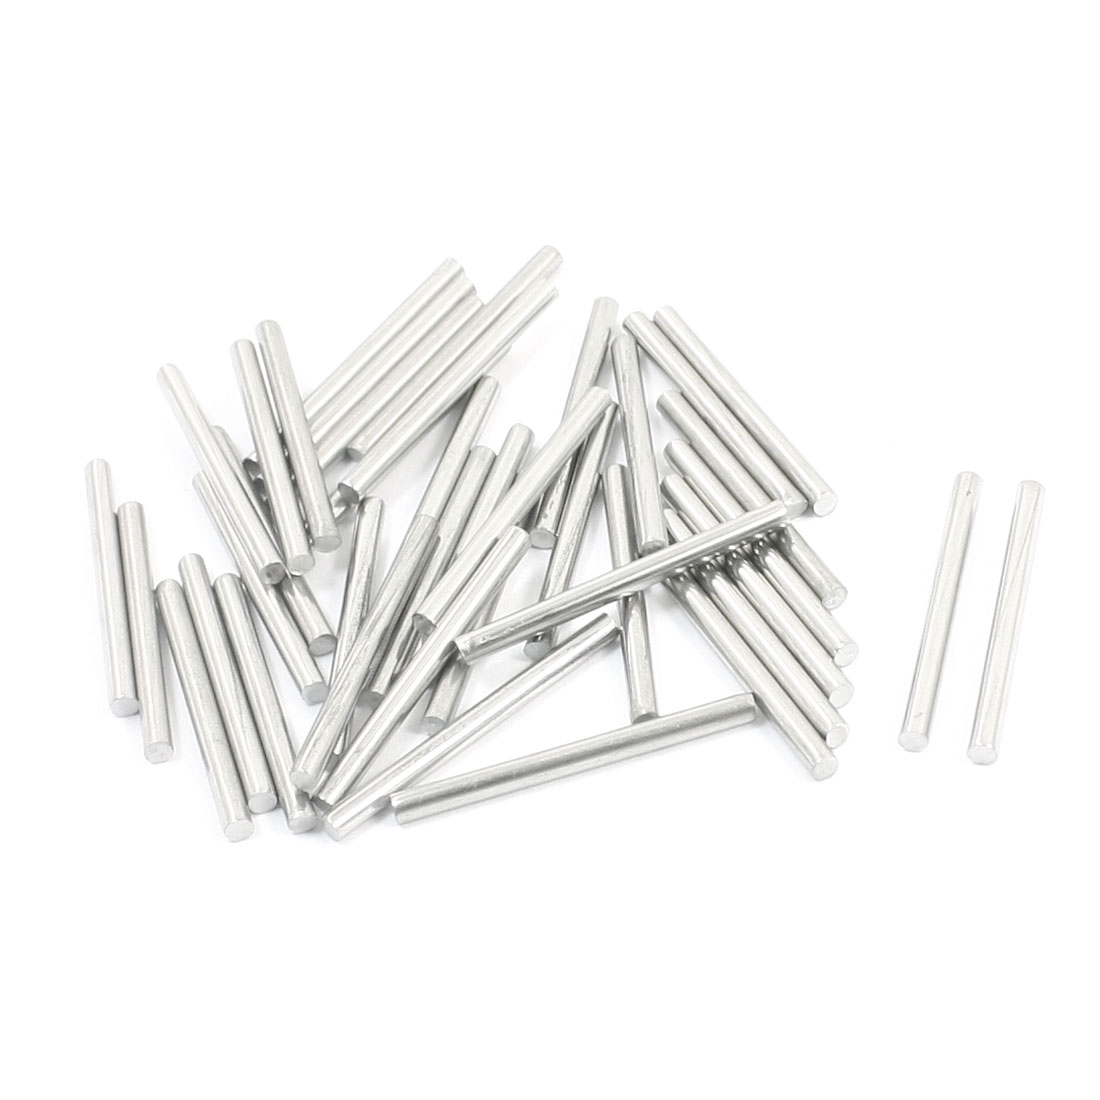 40pcs Stainless Steel Machinery Parts Component Round Bar 30x2.5mm